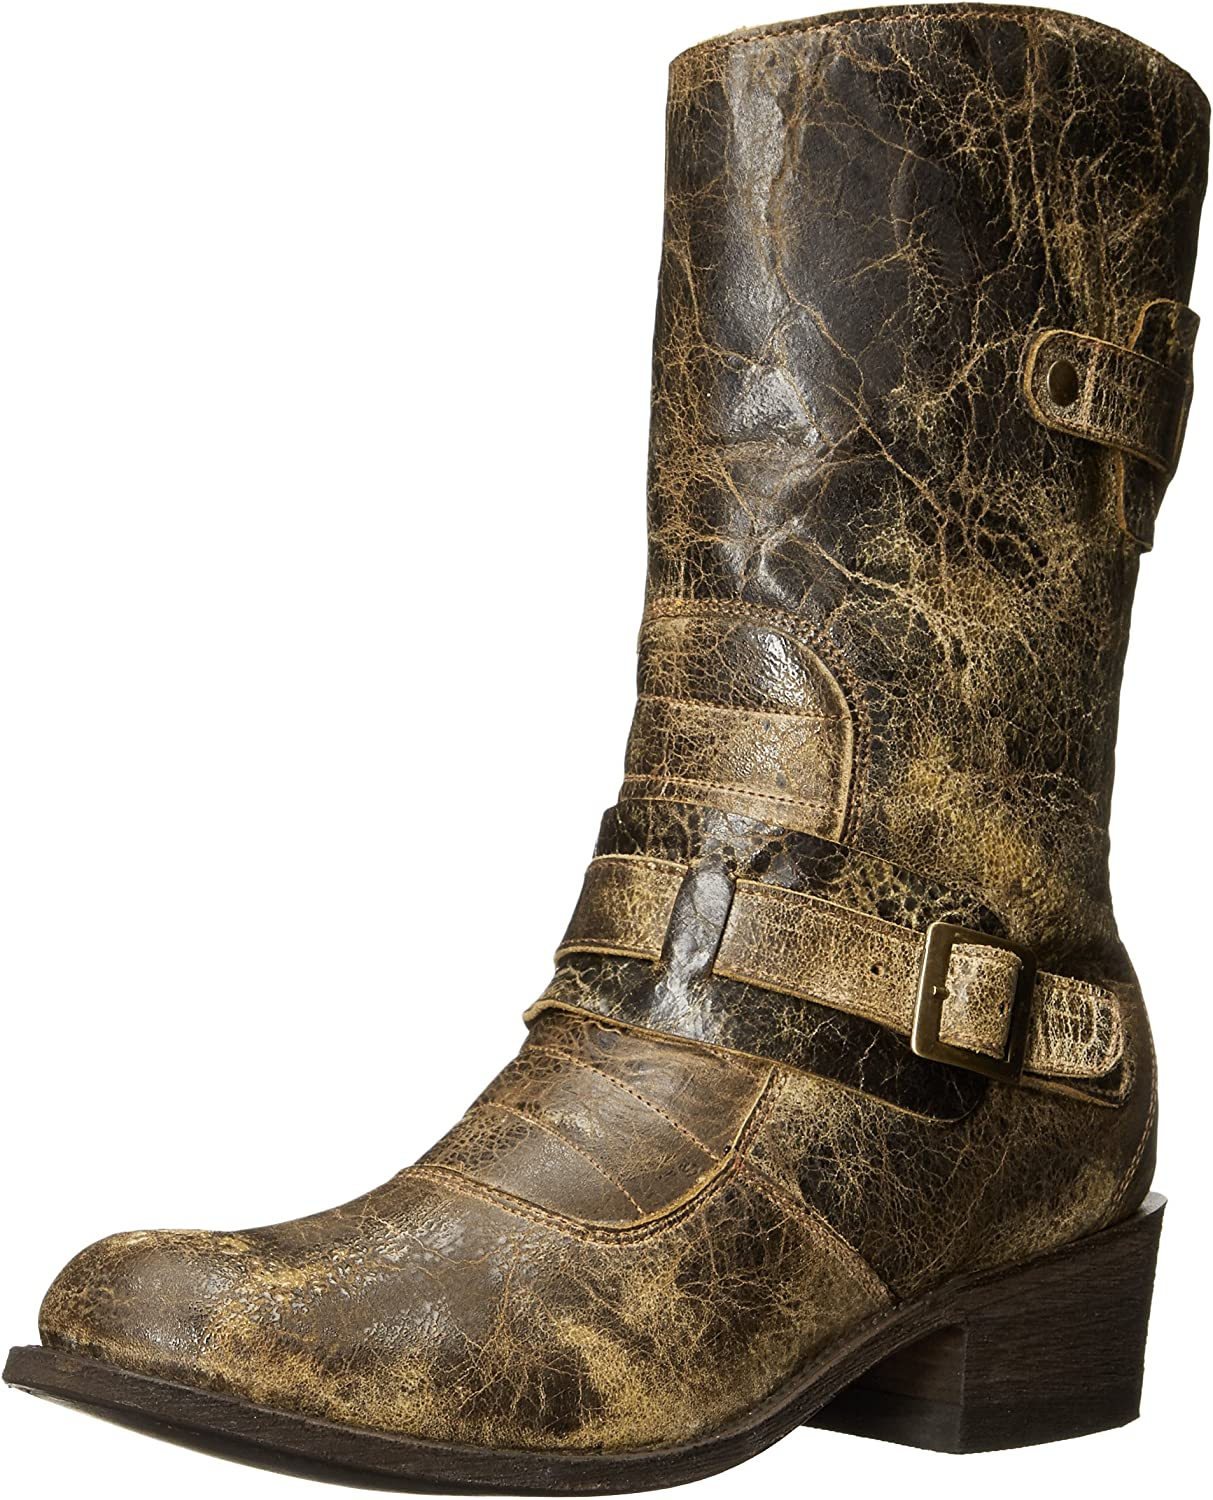 Five Worlds by Cordani Women's Sonia Western Boot